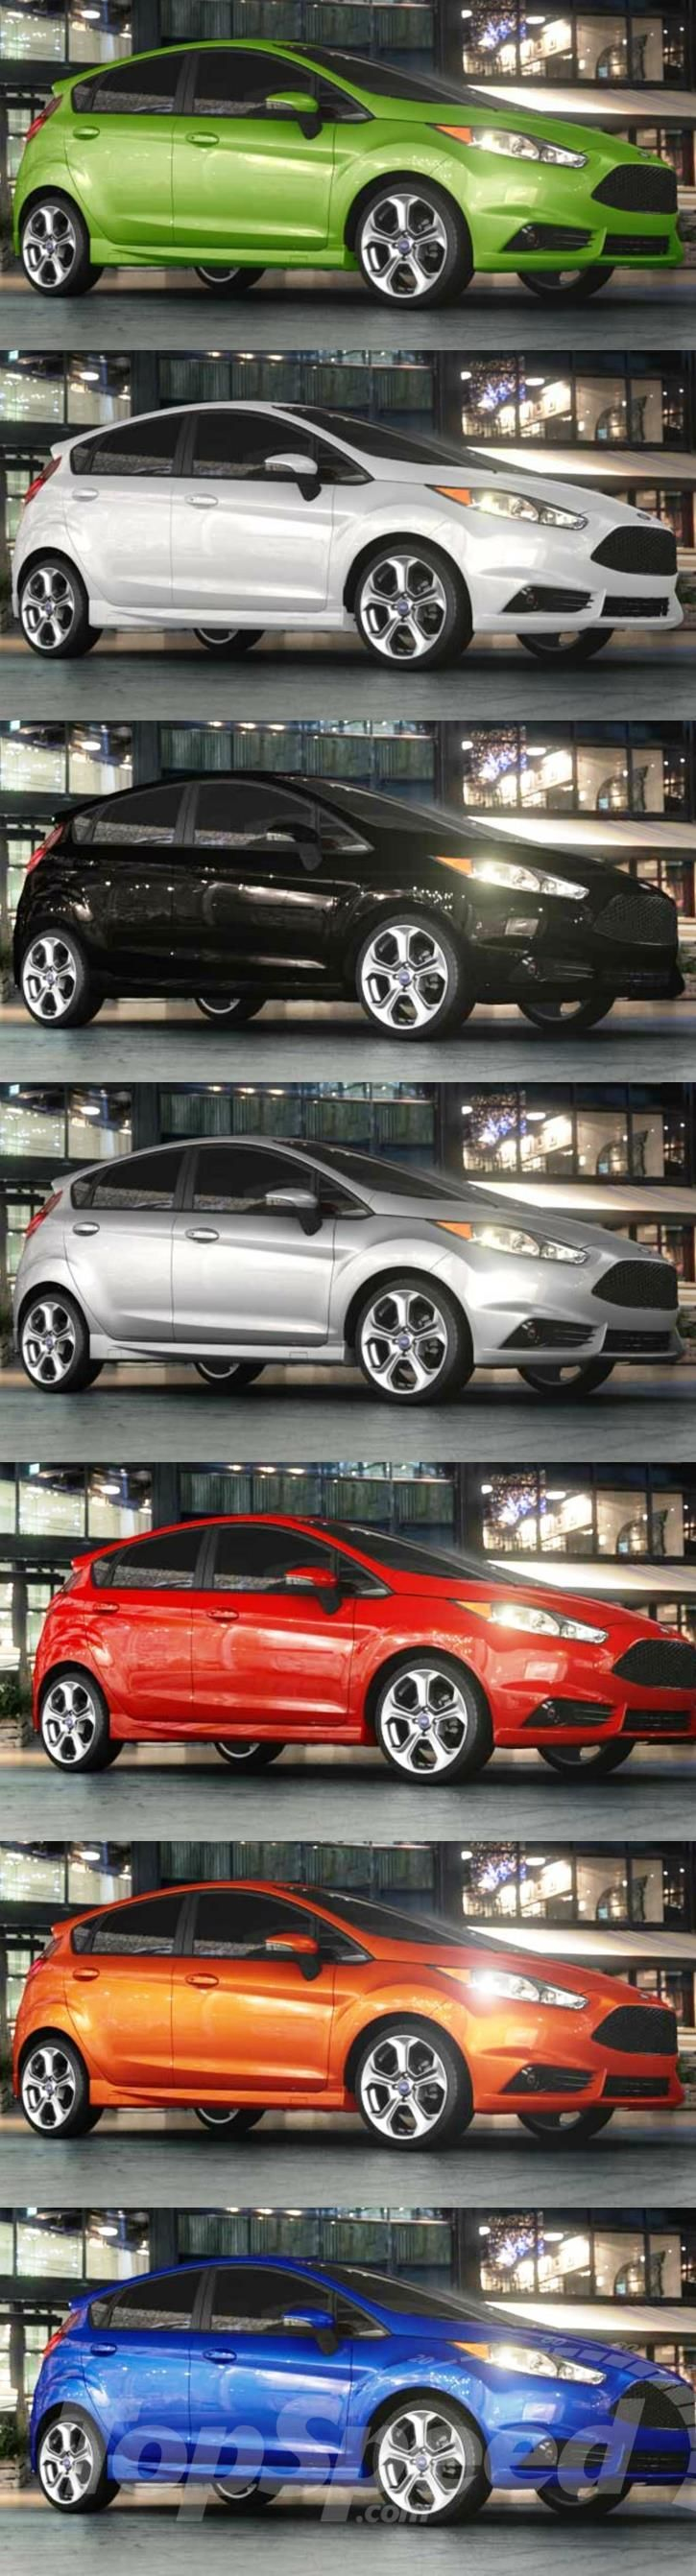 2014 2015 Ford Fiesta St Pictures Photos Wallpapers And Video Ford Carros Auto